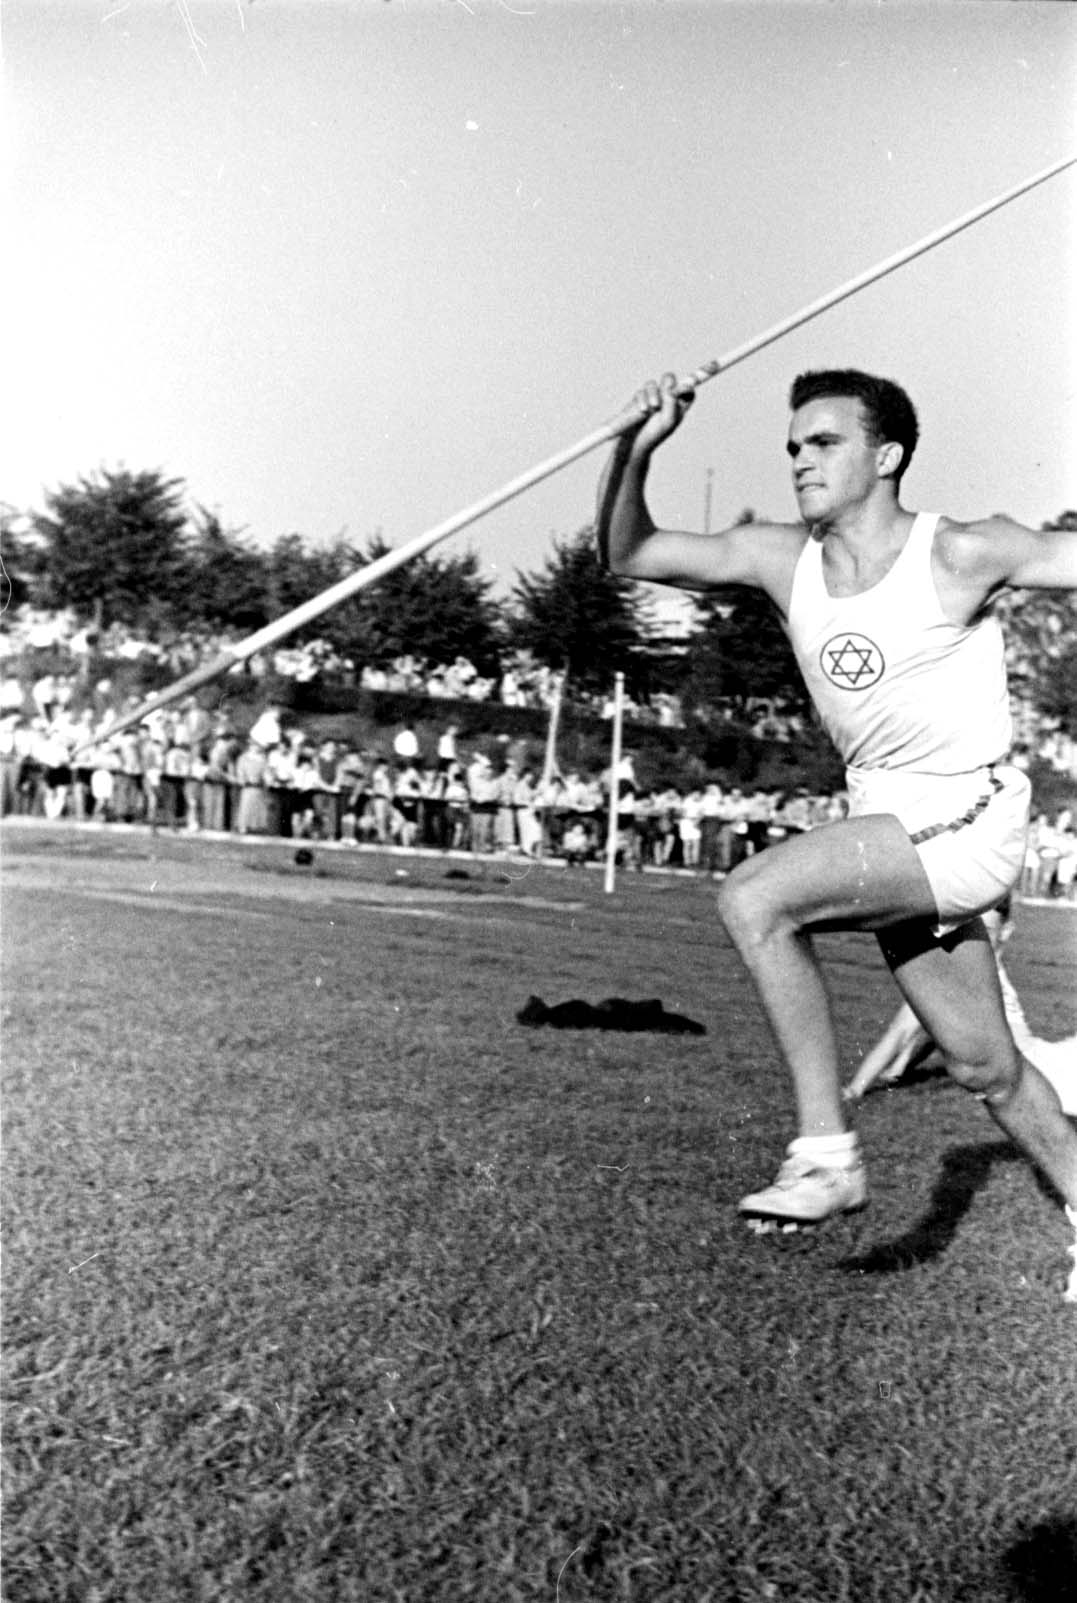 Berlin, Germany, August 1937  A javelin event at a  Maccabi track and field competition